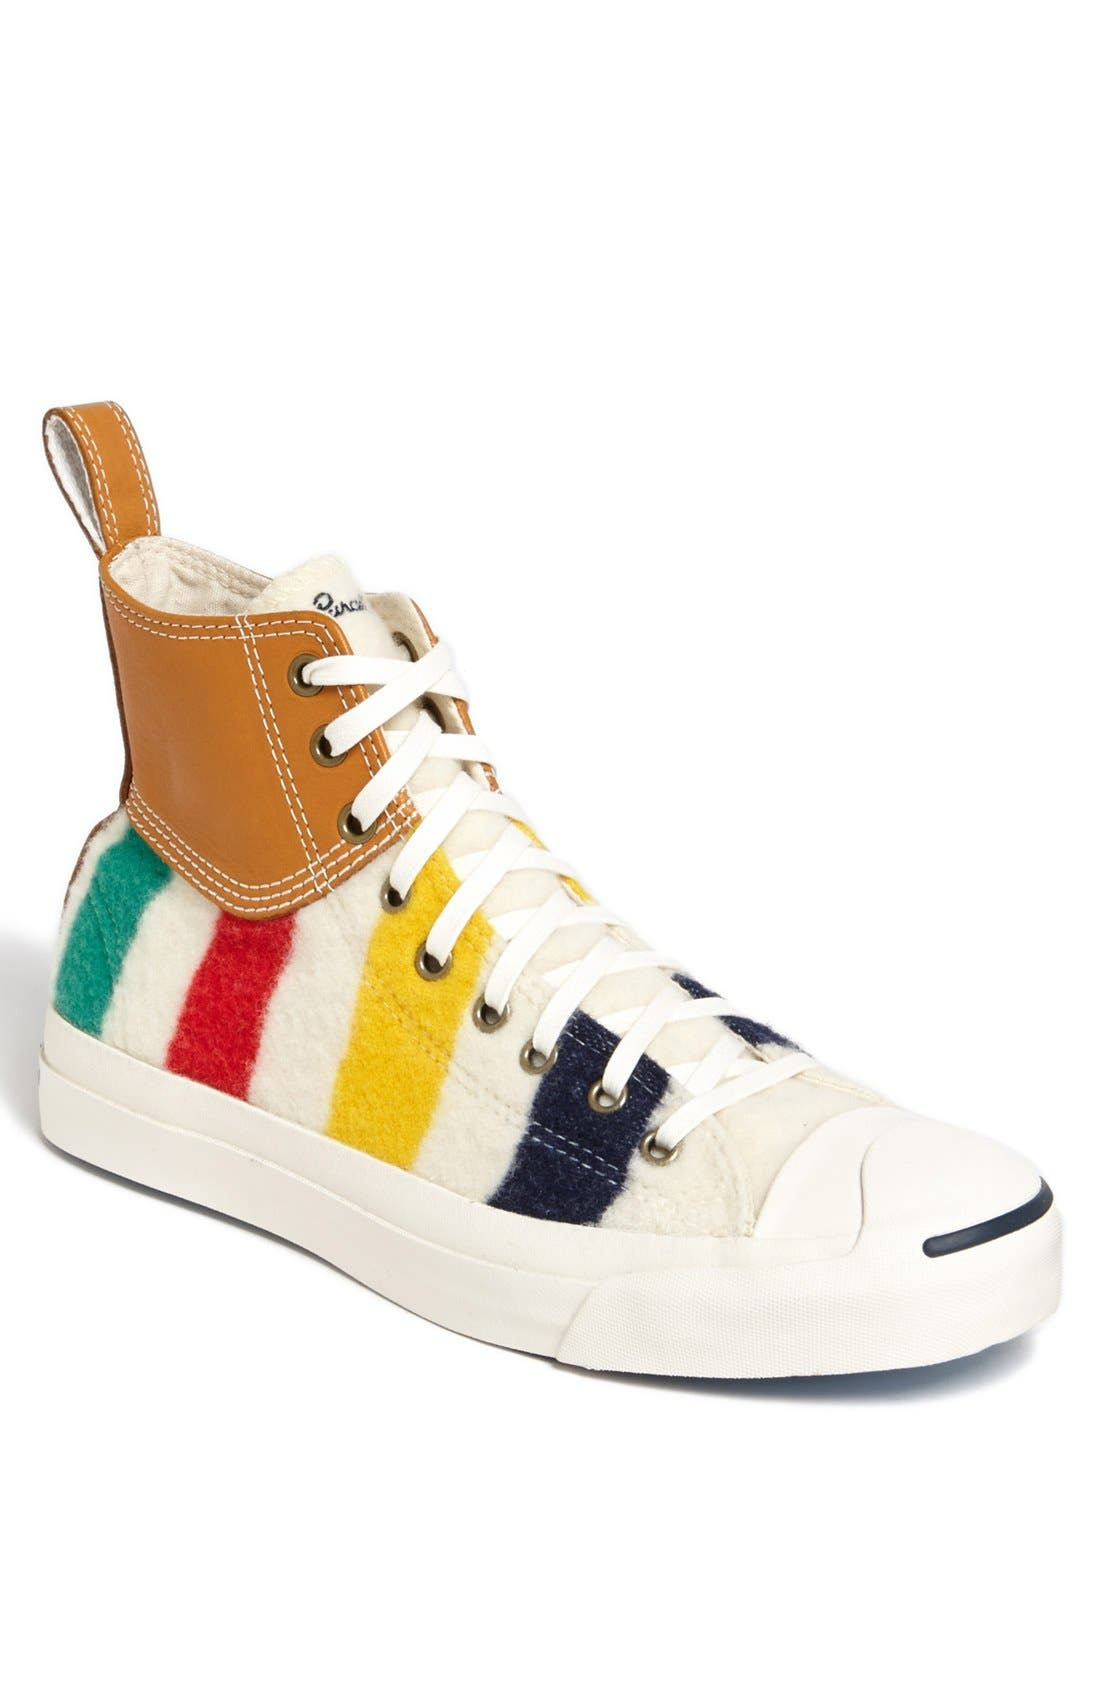 Main Image - Converse 'Jack Purcell - Duck' Sneaker